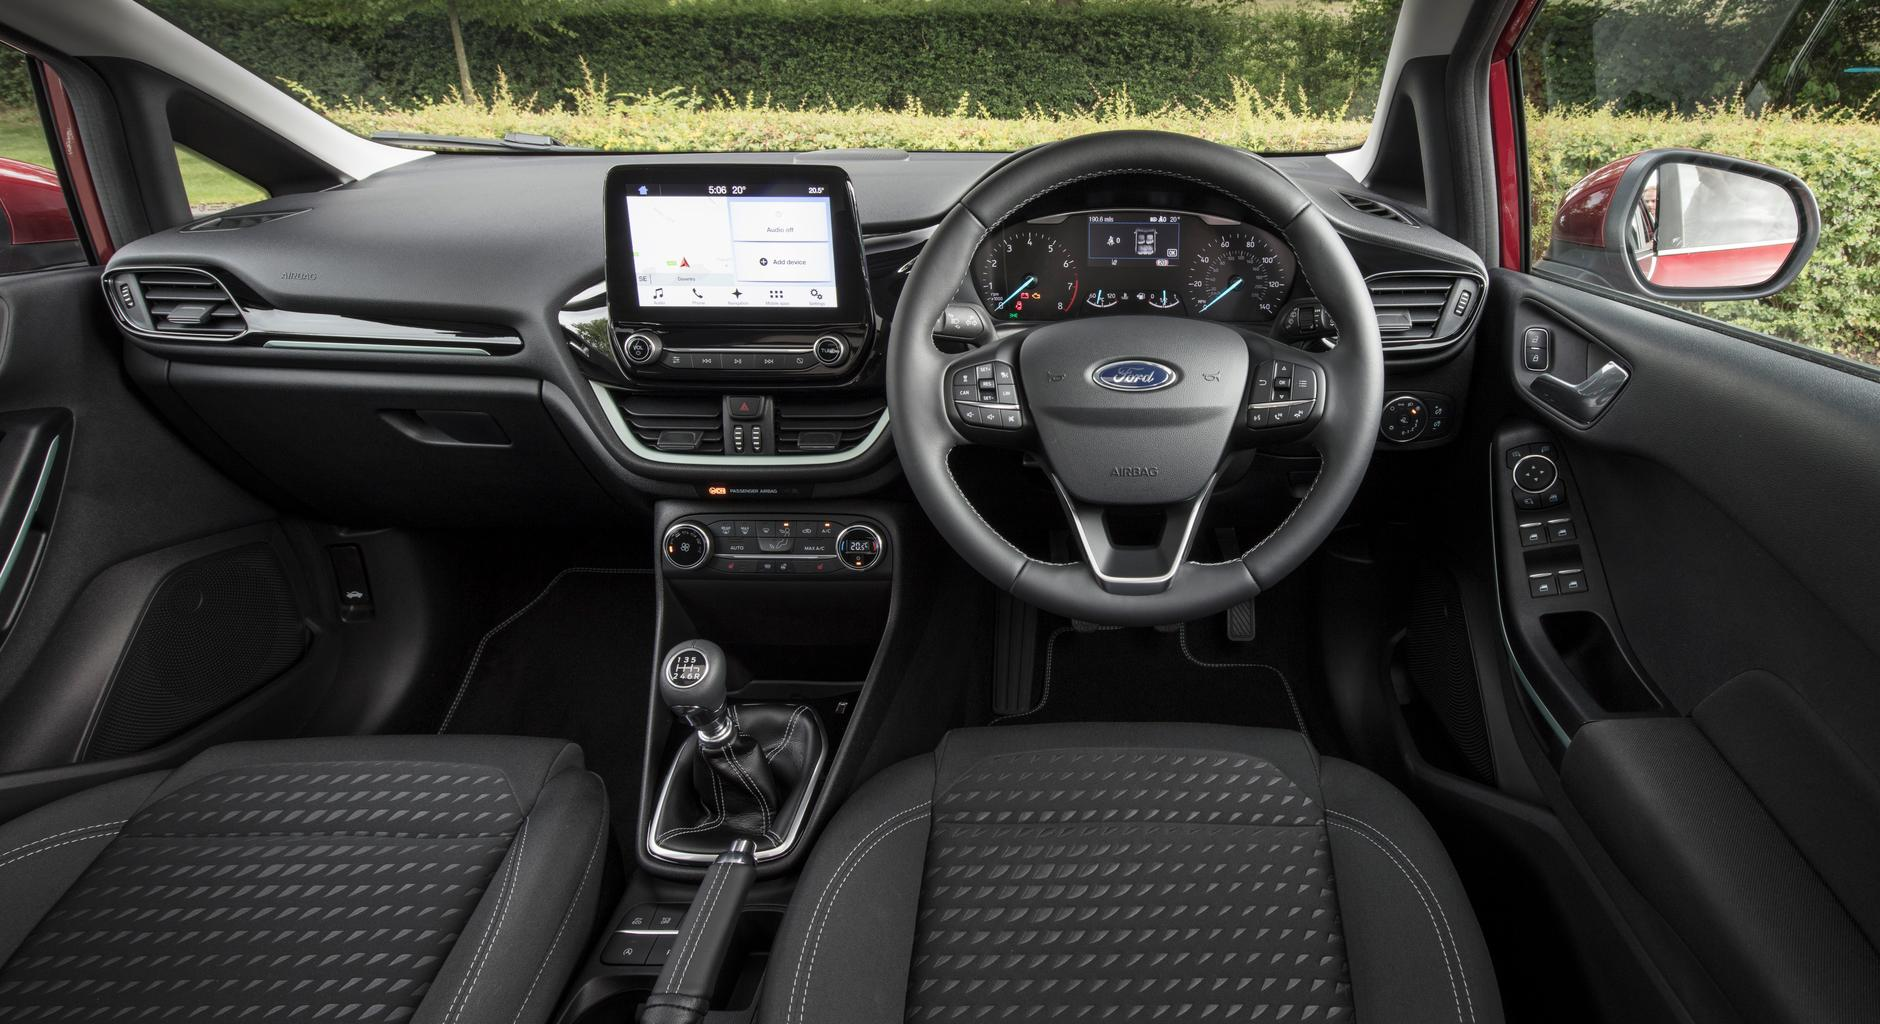 Ford Fiesta 2017 Specs 2017 Ford Fiesta 1 Ecoboost 100 Review Price Specs